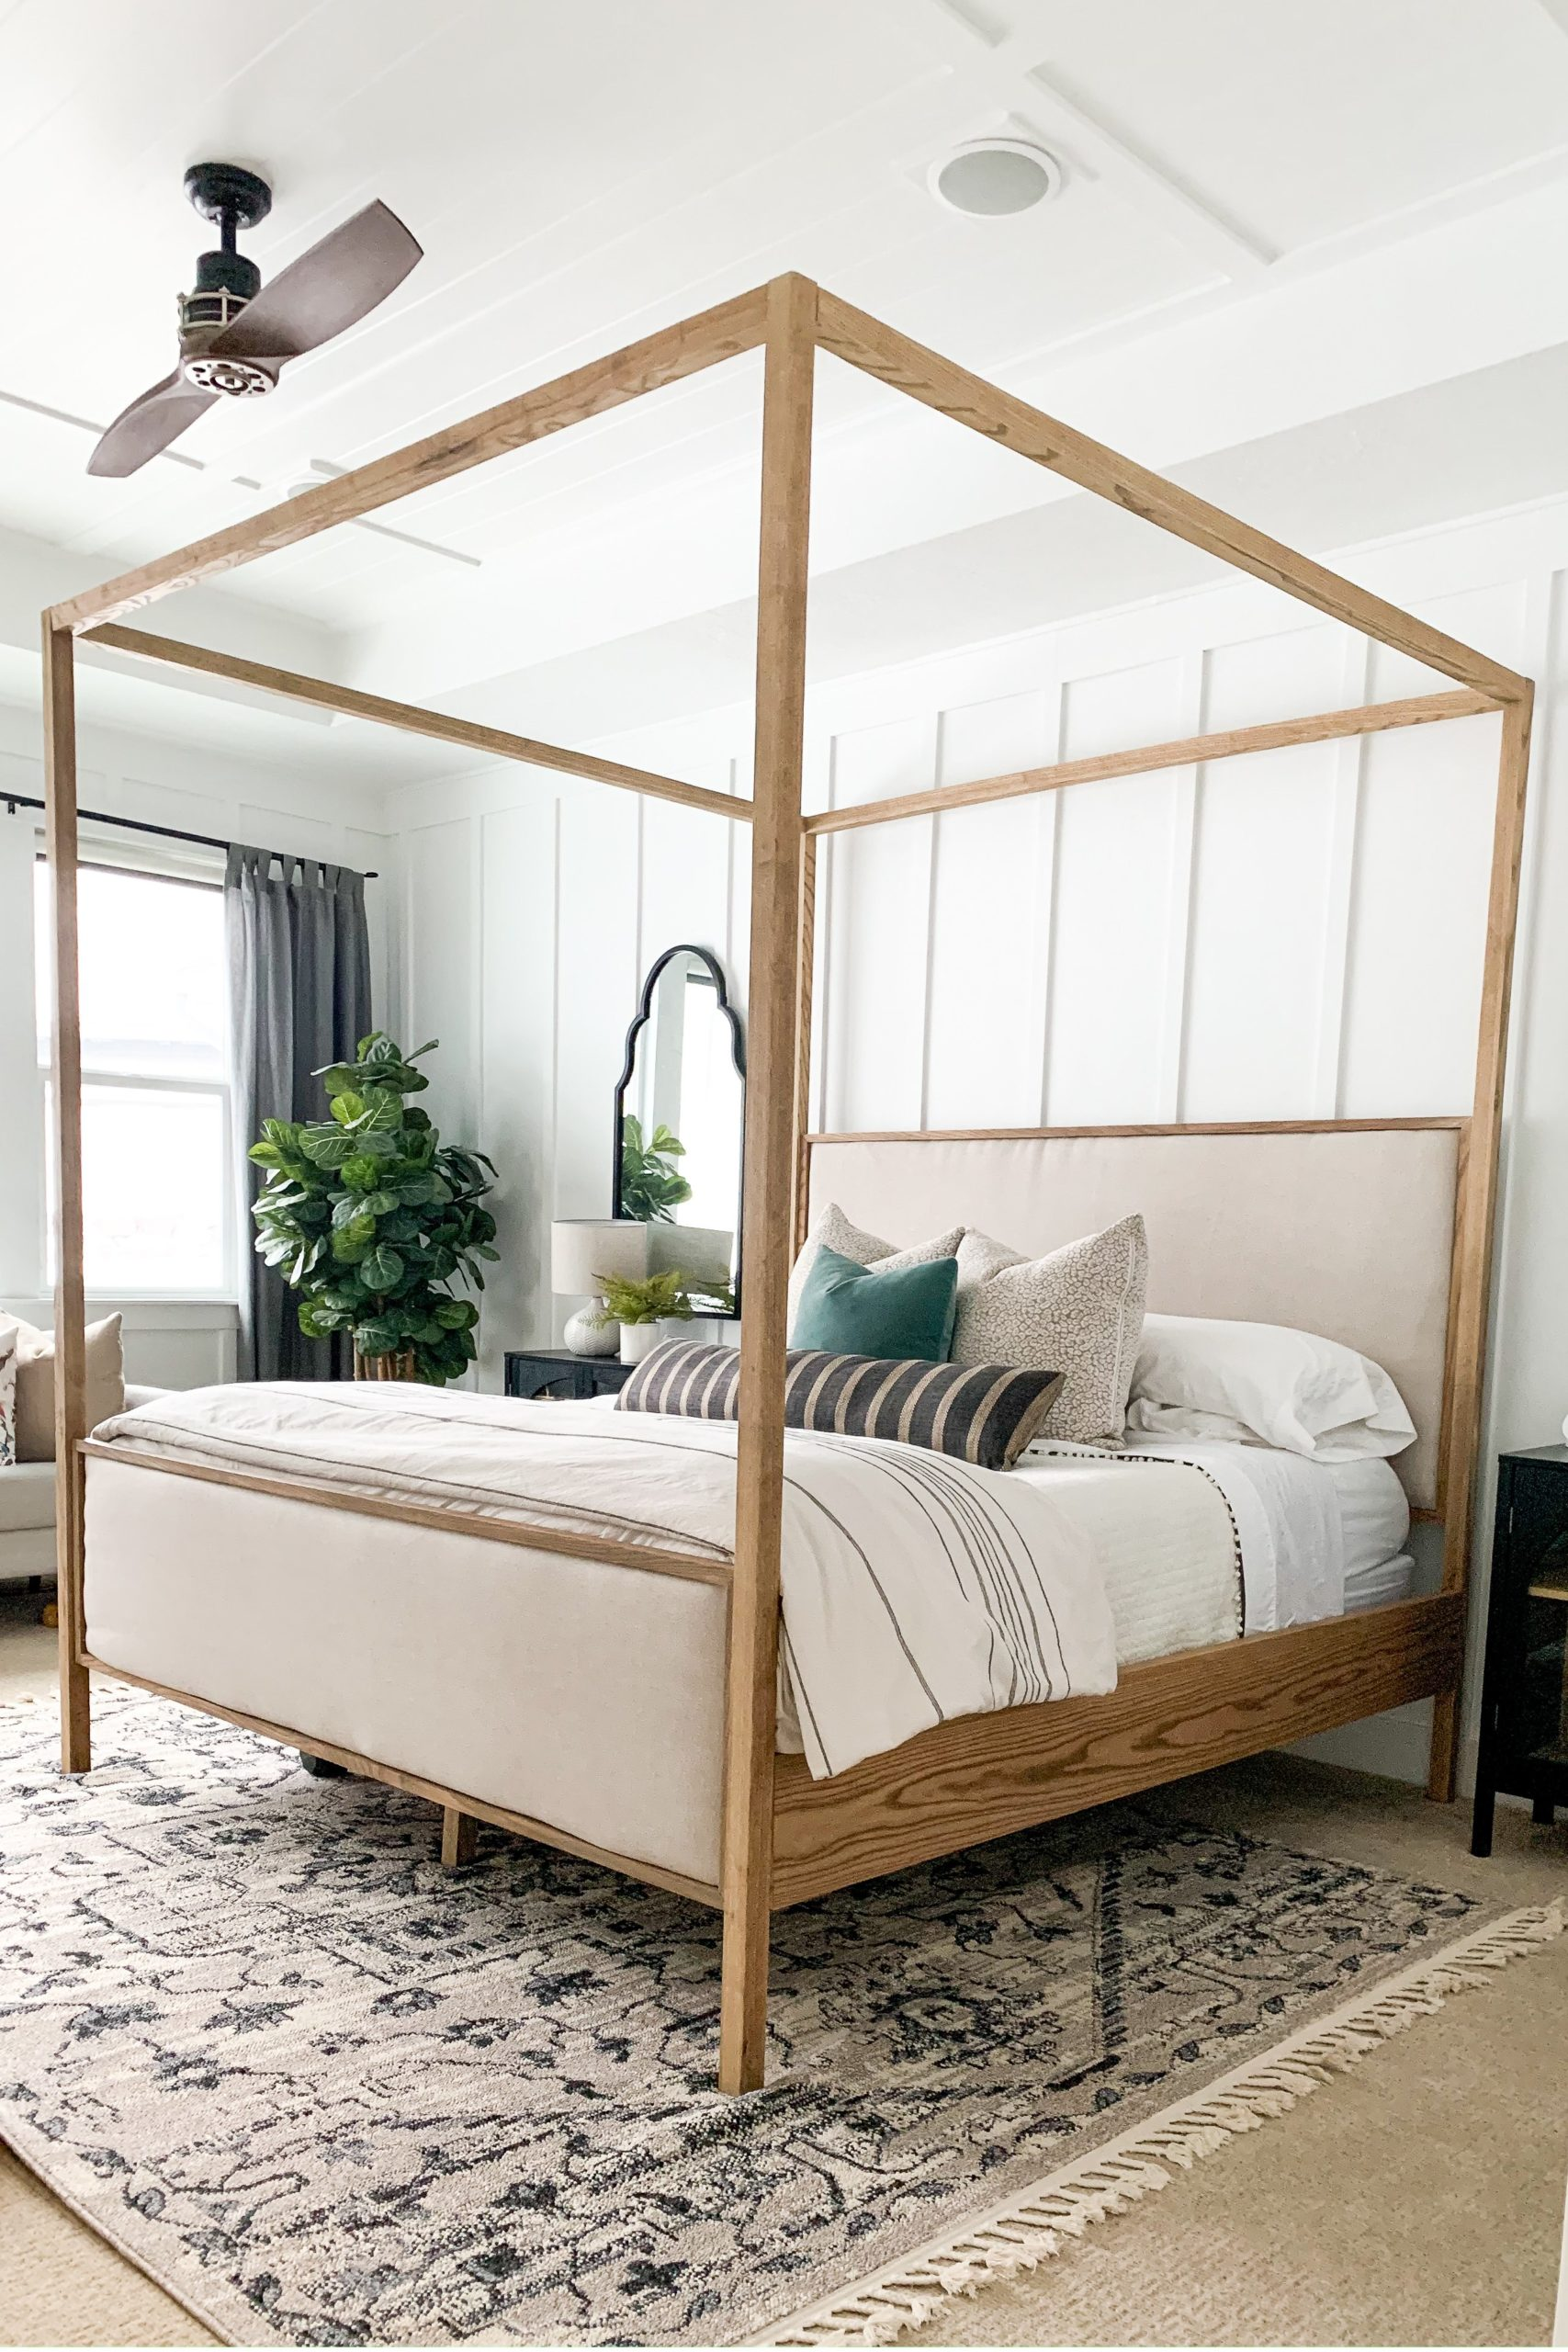 How To Build An Upholstered Canopy King Bed Honey Built Home